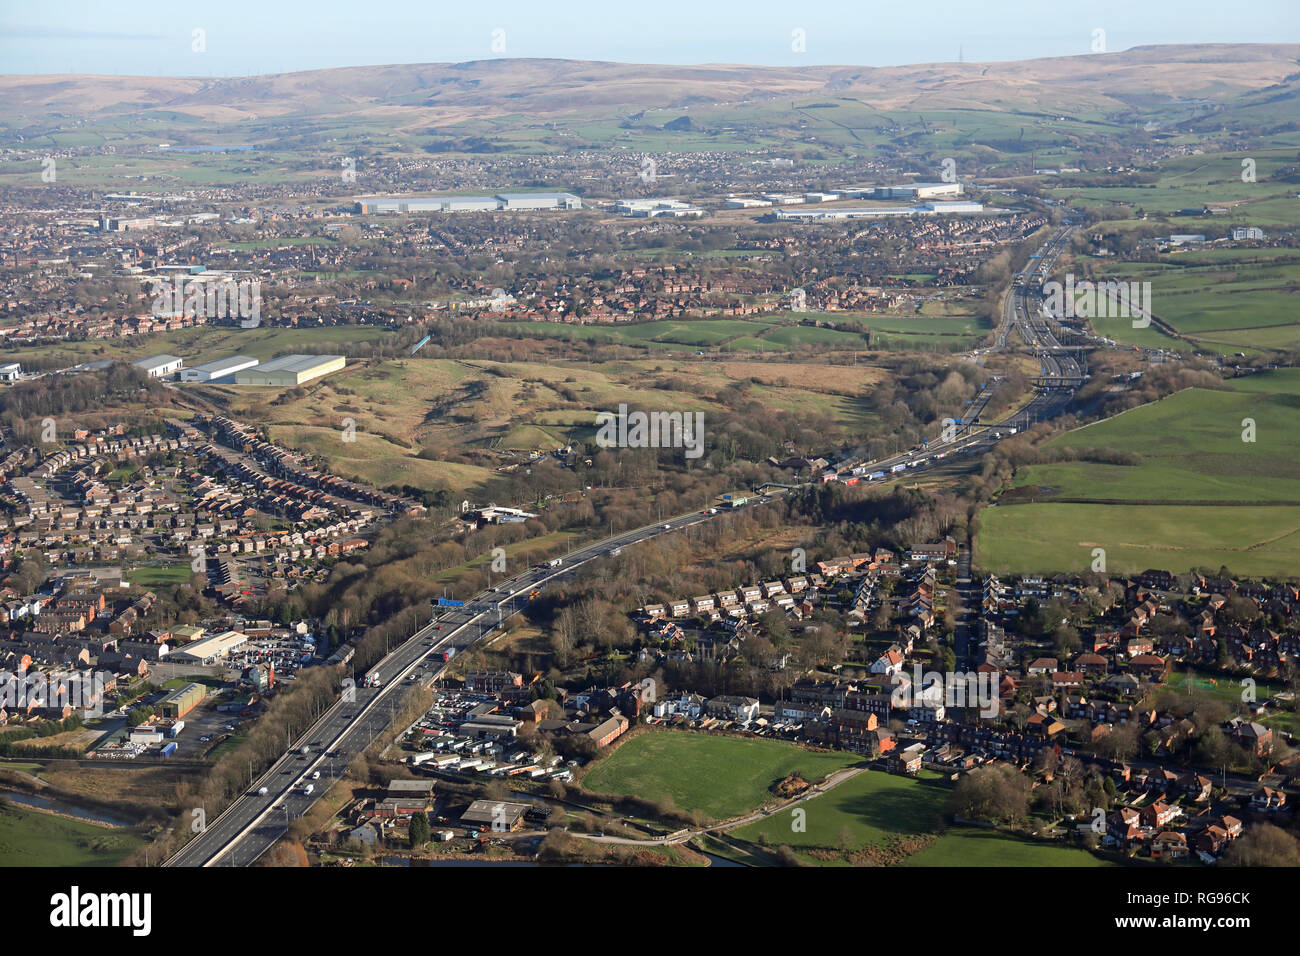 aerial view looking east along the M62 towards junction 20 from Castleton, north of Oldham, Greater Manchester - Stock Image